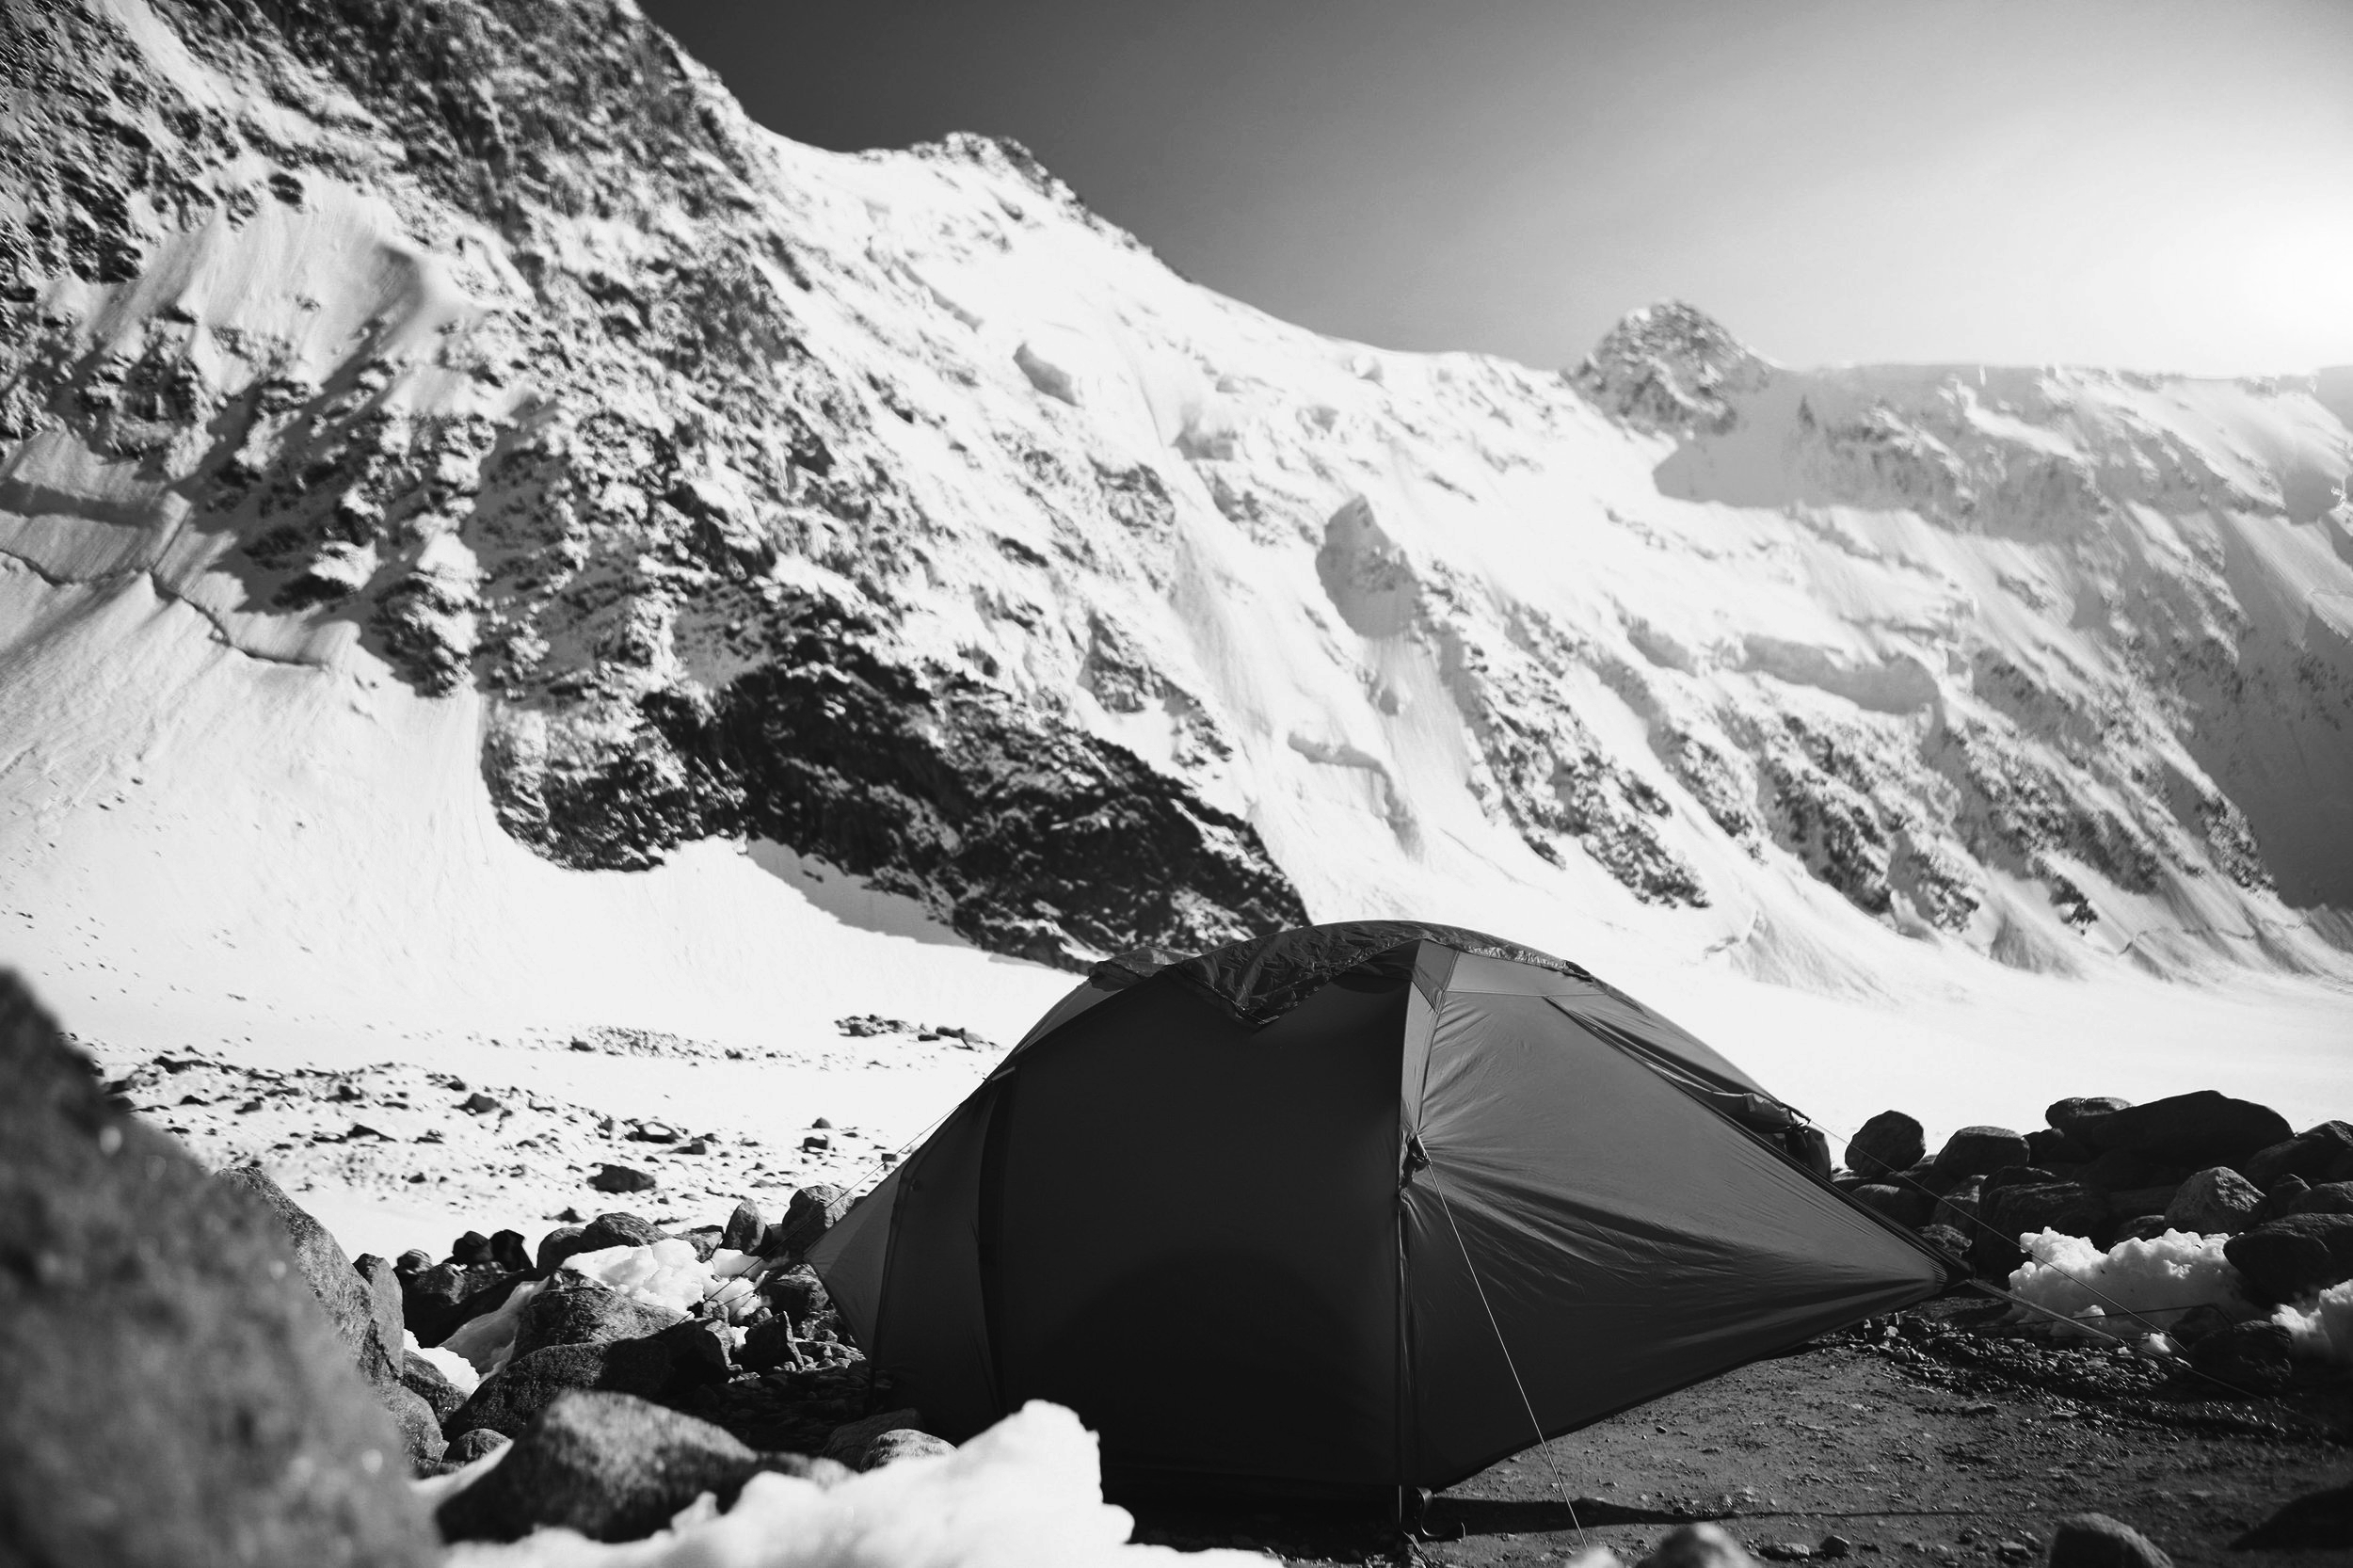 Base Camp BW.jpg